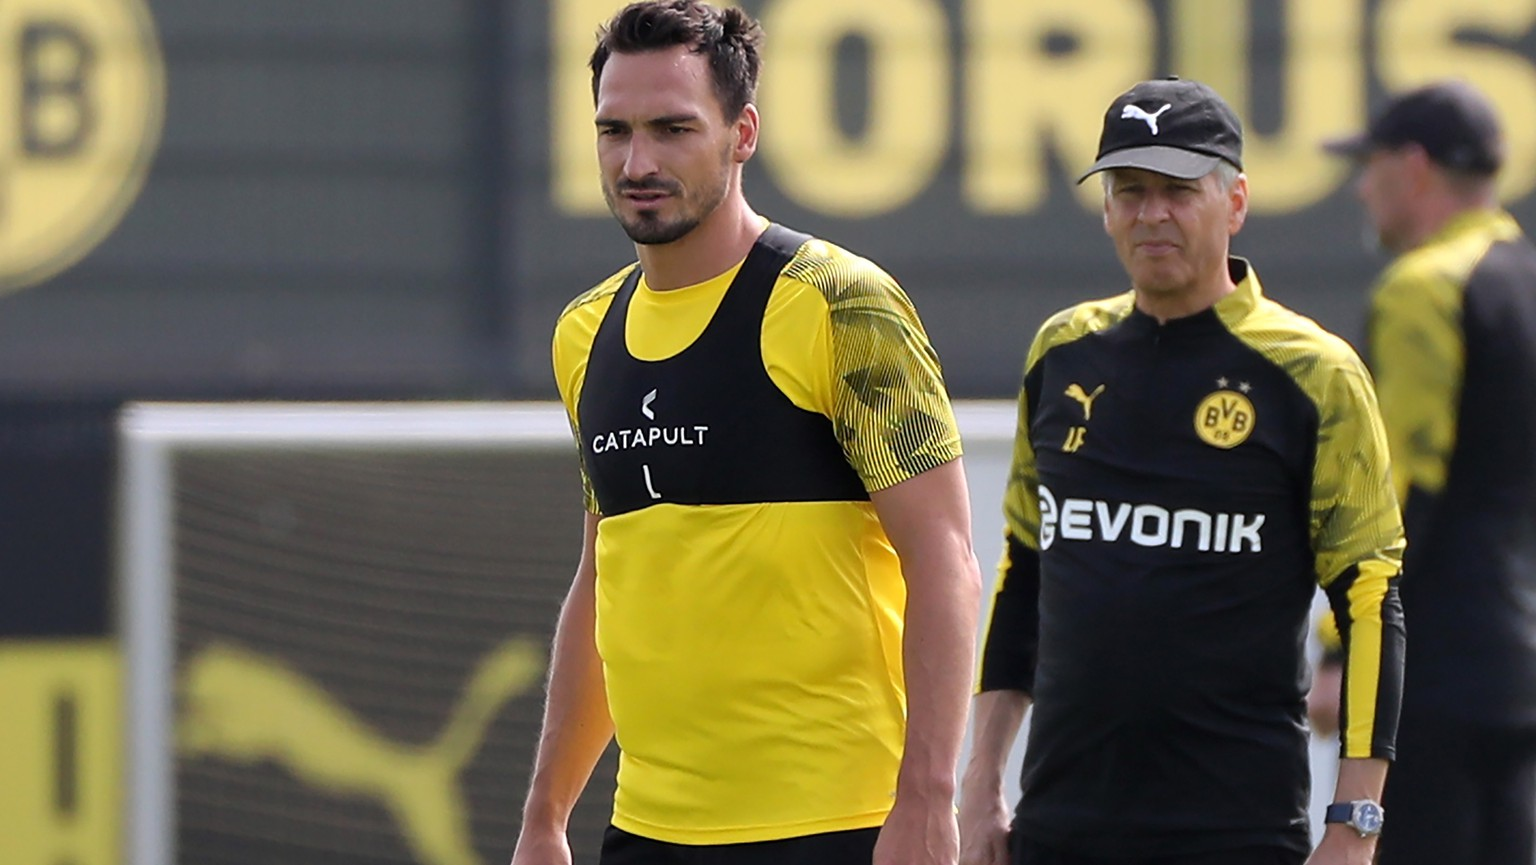 epa07696688 Dortmund's Mats Hummels and Dortmund's head coach Lucien Favre during a training session in Dortmund, Germany, 05 July 2019. Dortmund will play friendly matches against MLS team Seattle Sounders on 17 July and English Premier League team Liverpool on 19 July.  EPA/FRIEDEMANN VOGEL